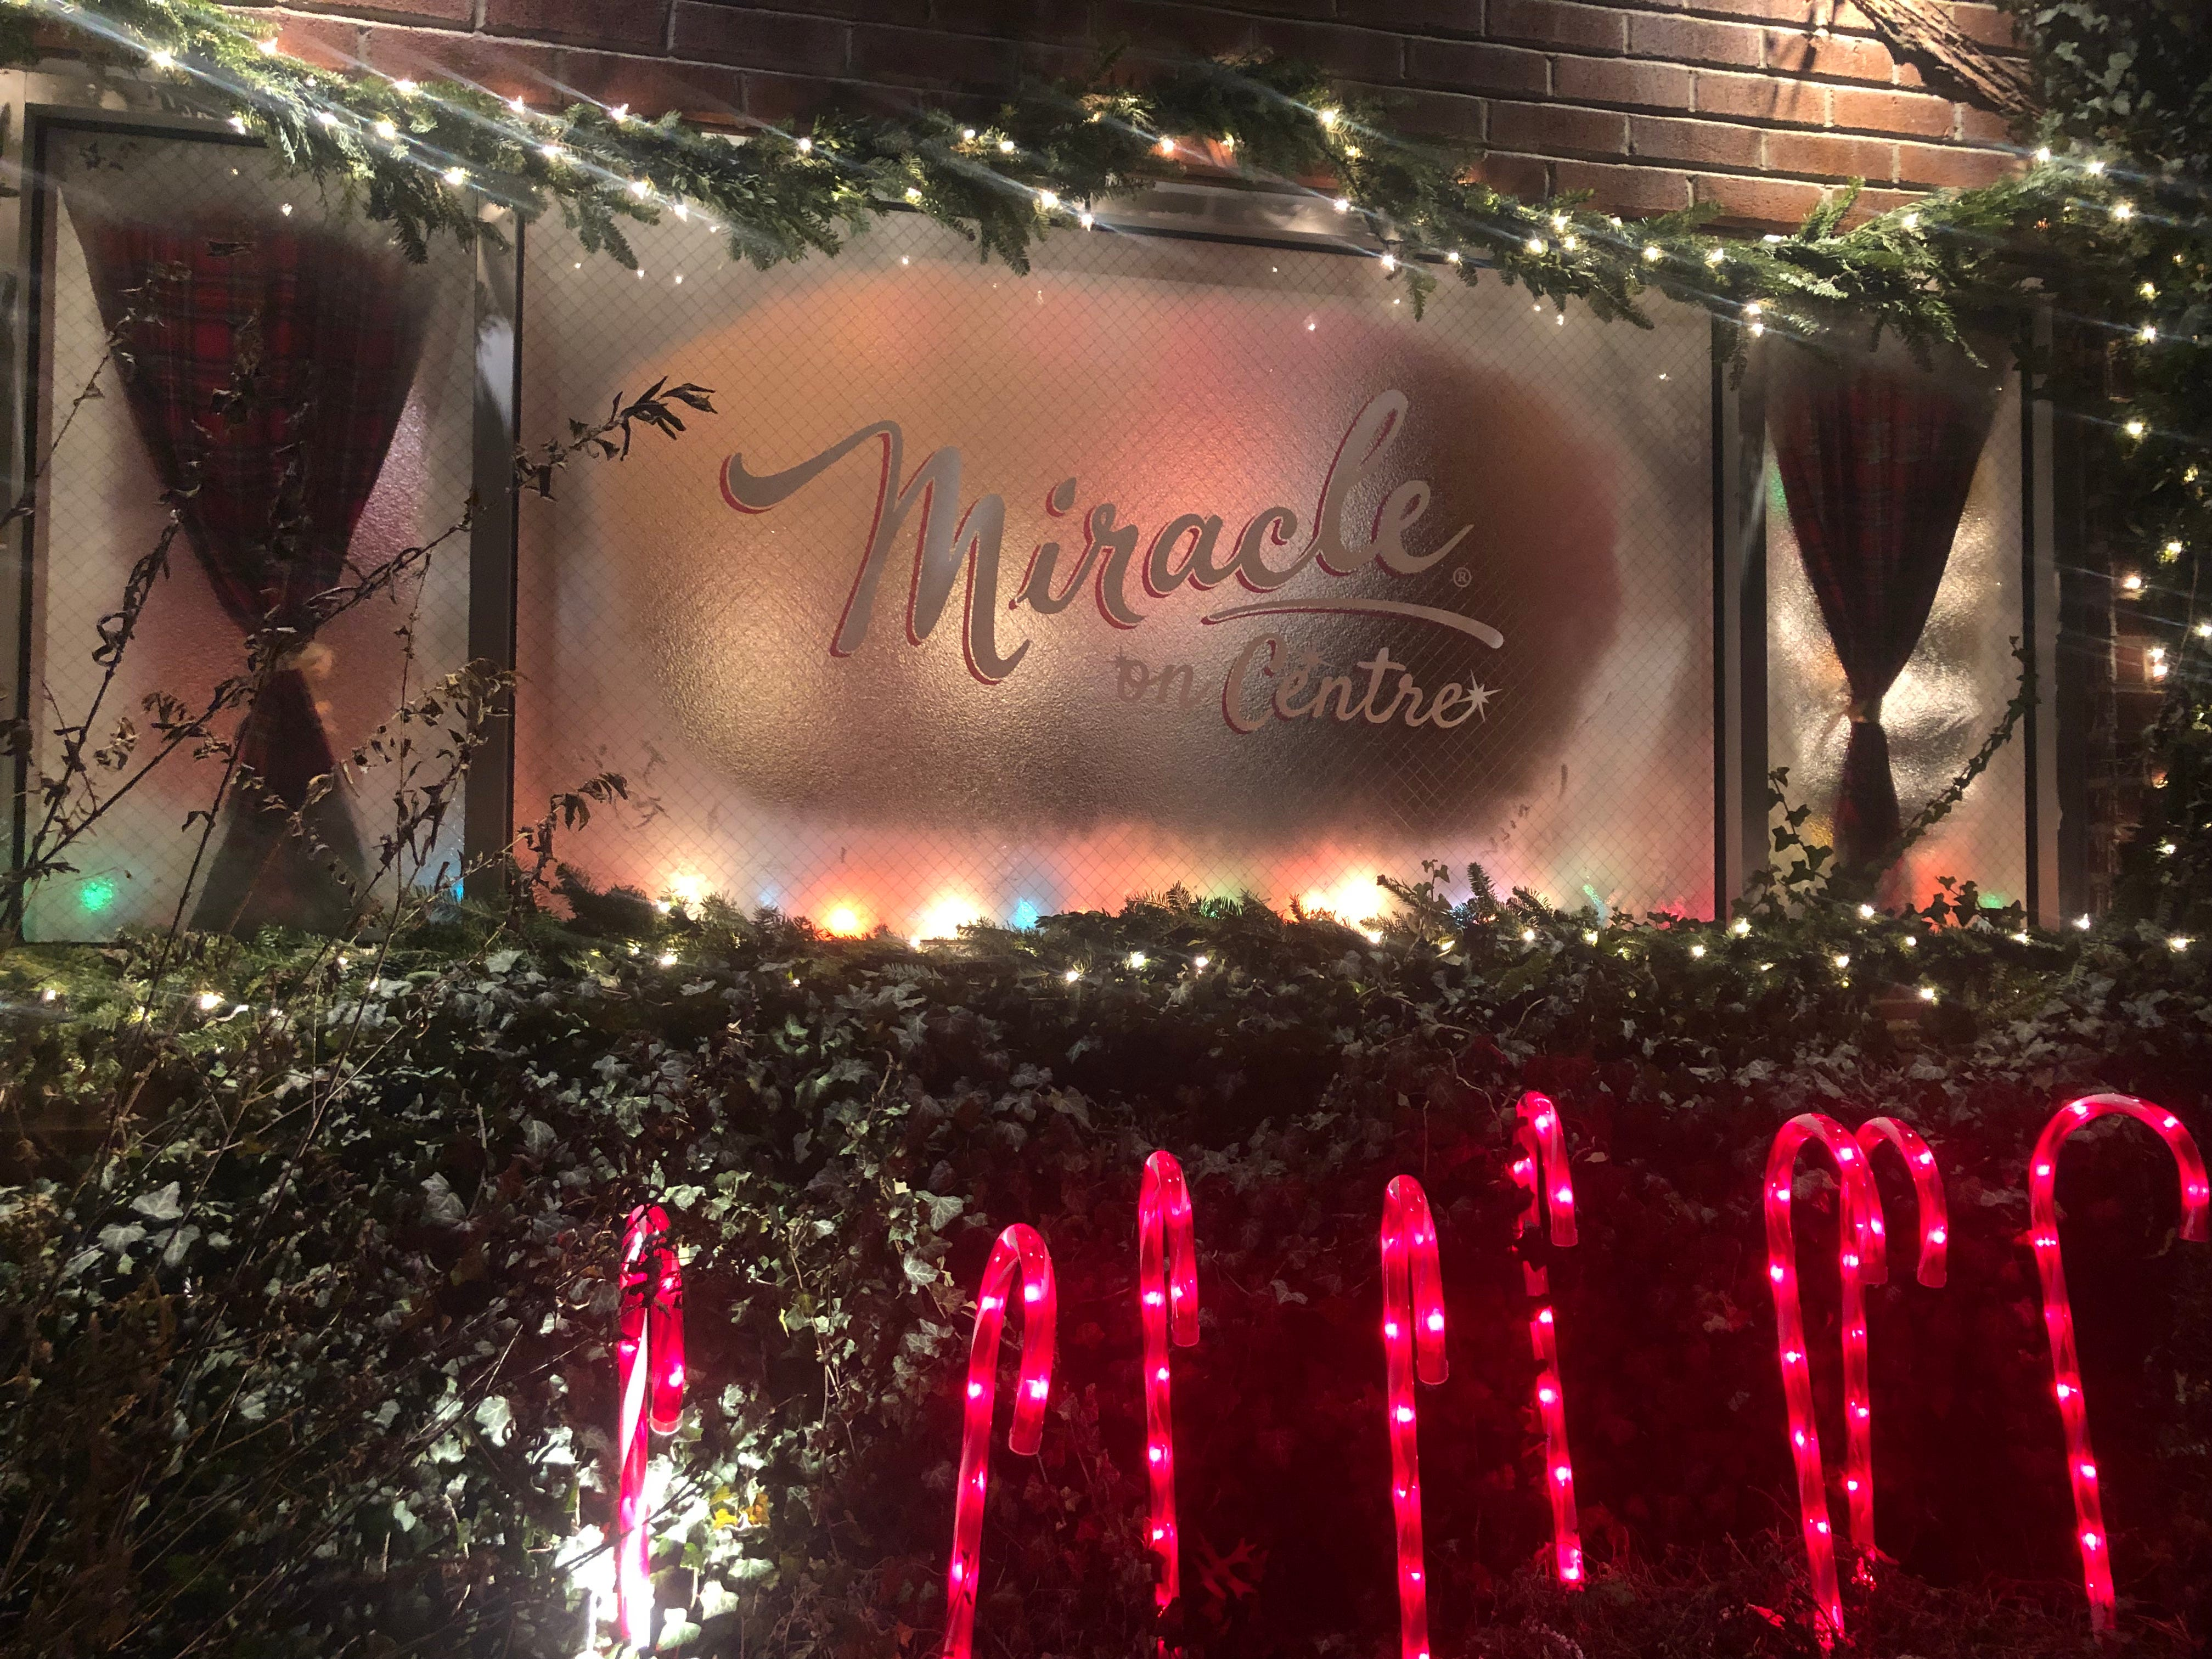 "A frosted window shows off the ""new"" name: Miracle on Centre."